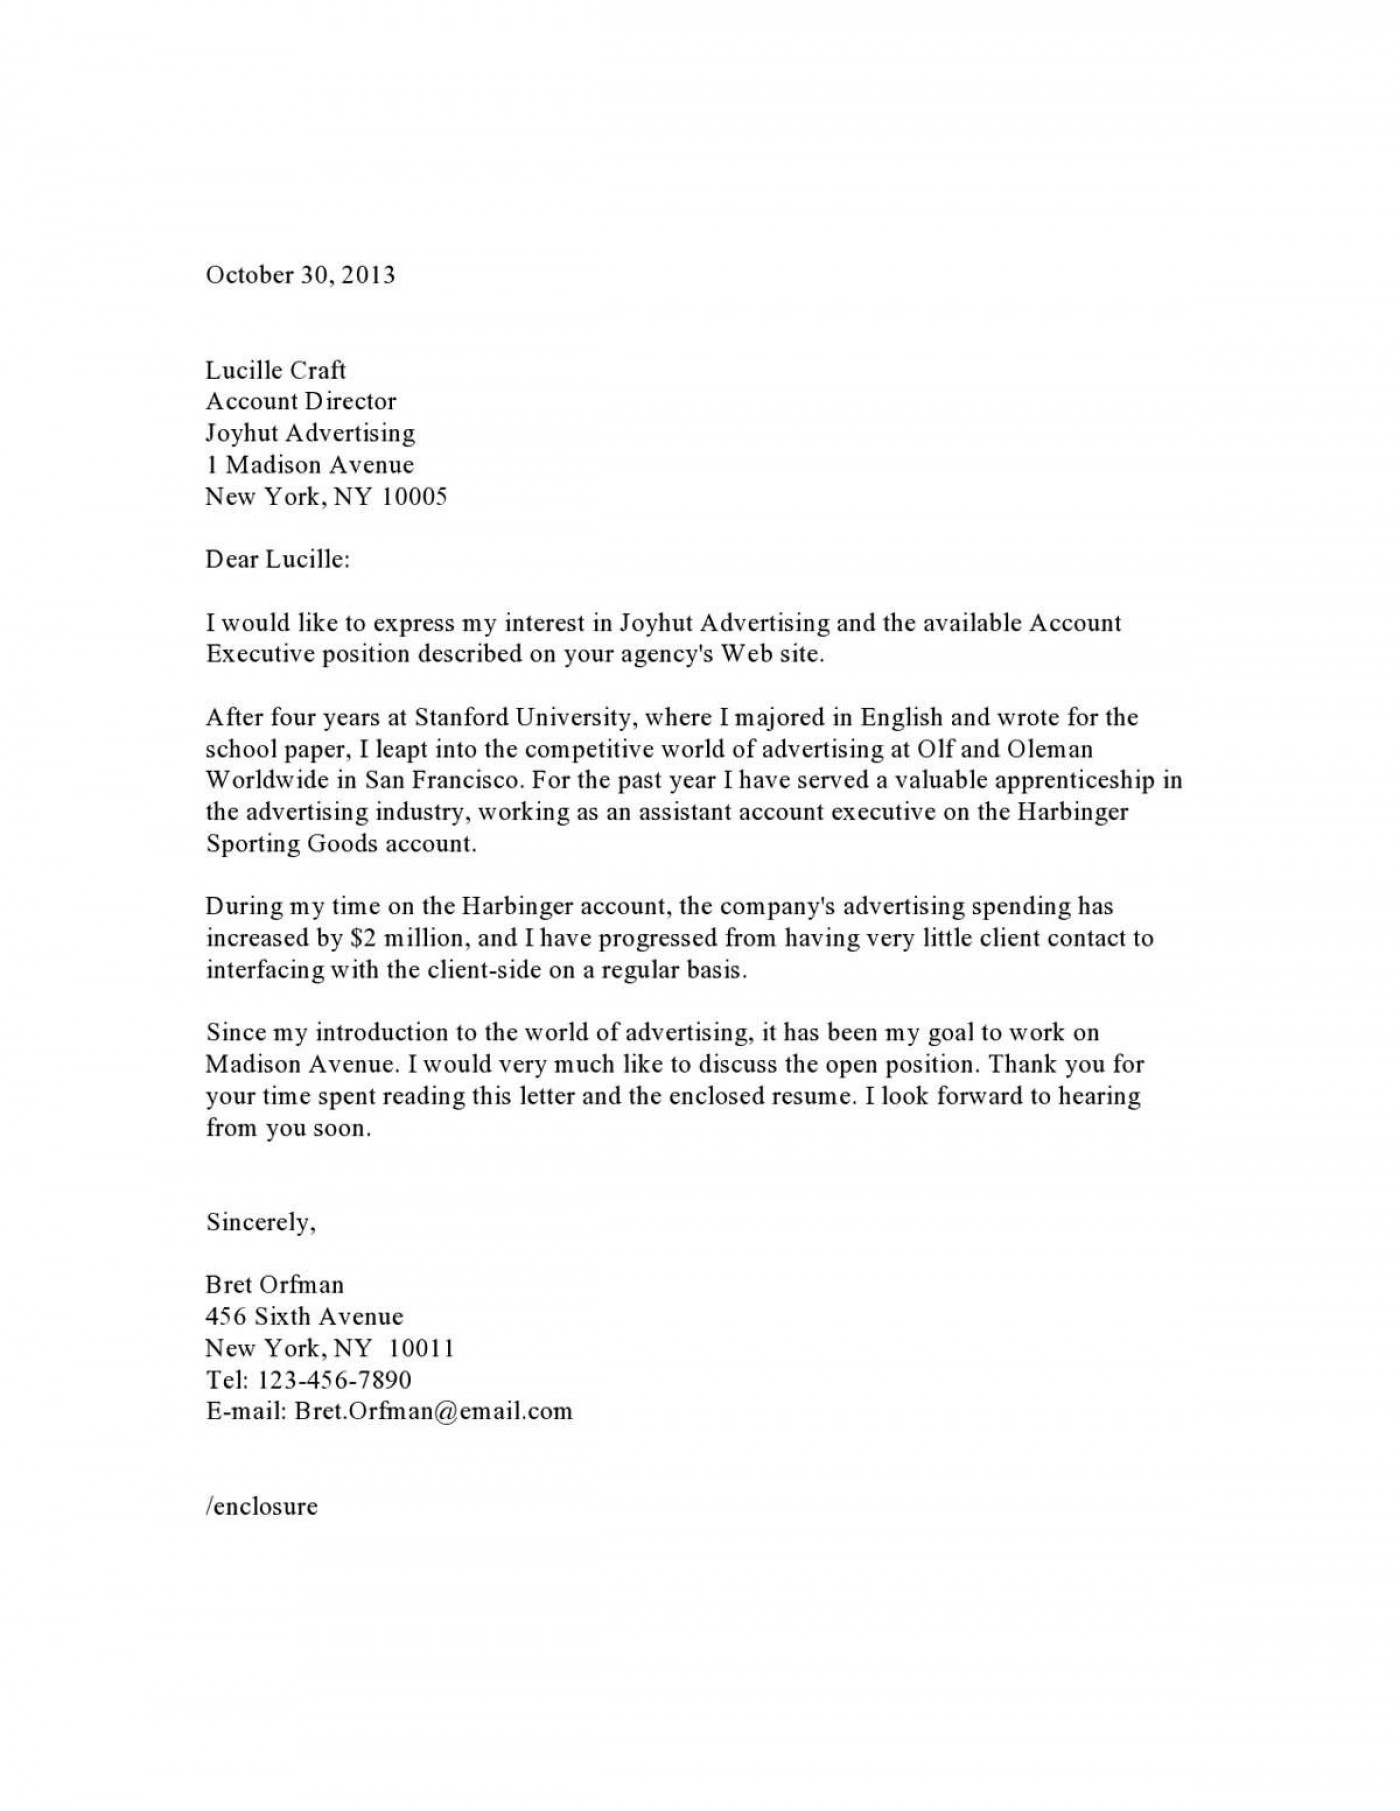 002 Marvelou Cover Letter Writing Template Picture  How To Write A Great Cv Example1400